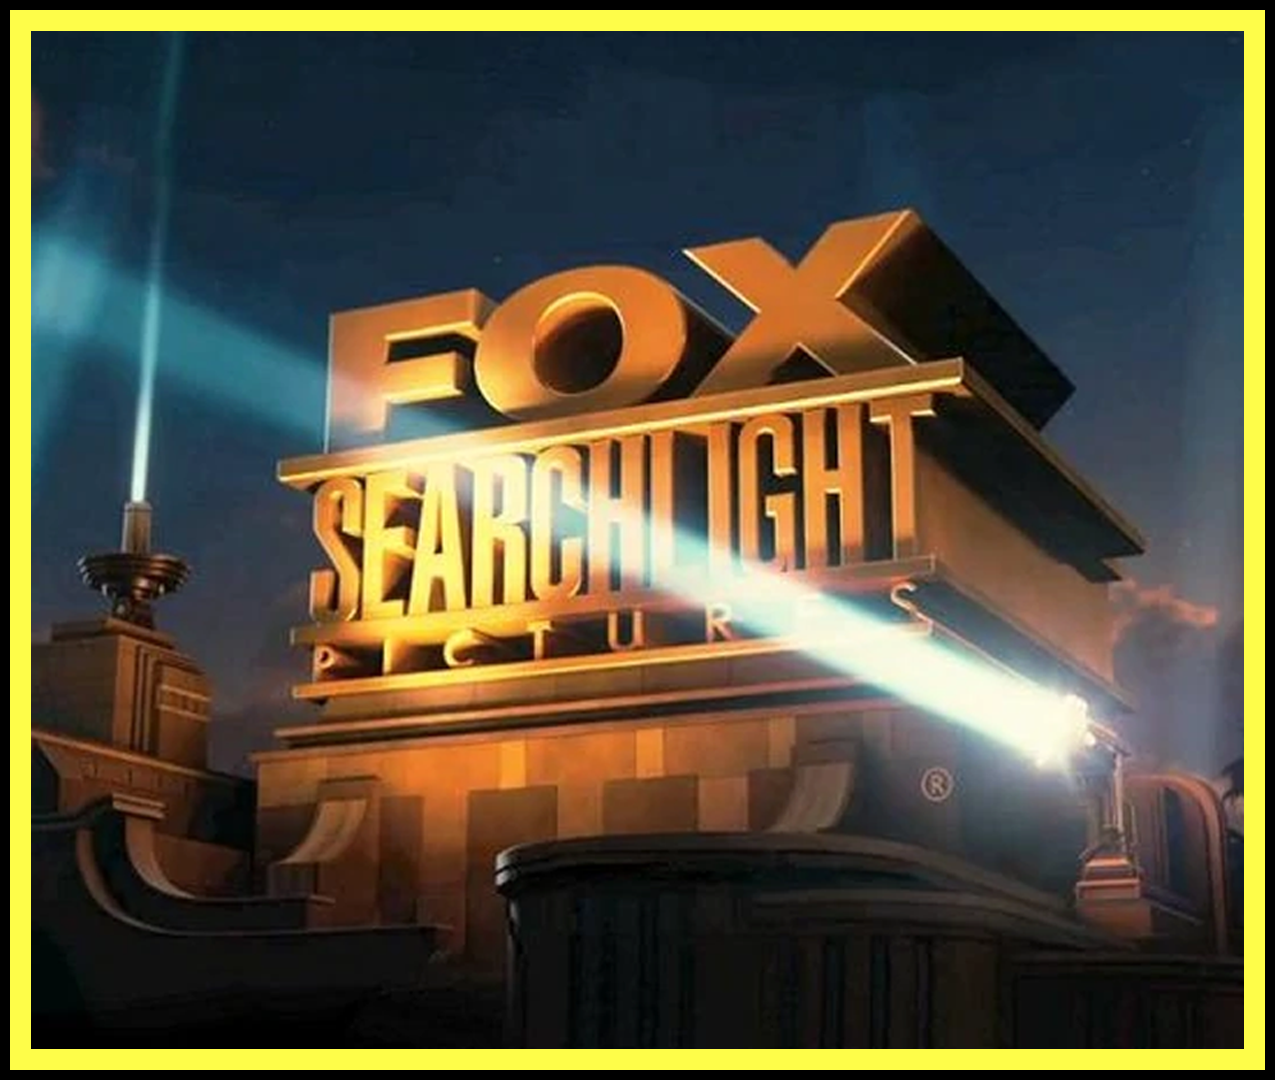 Searchlight Pictures/Logo Variations